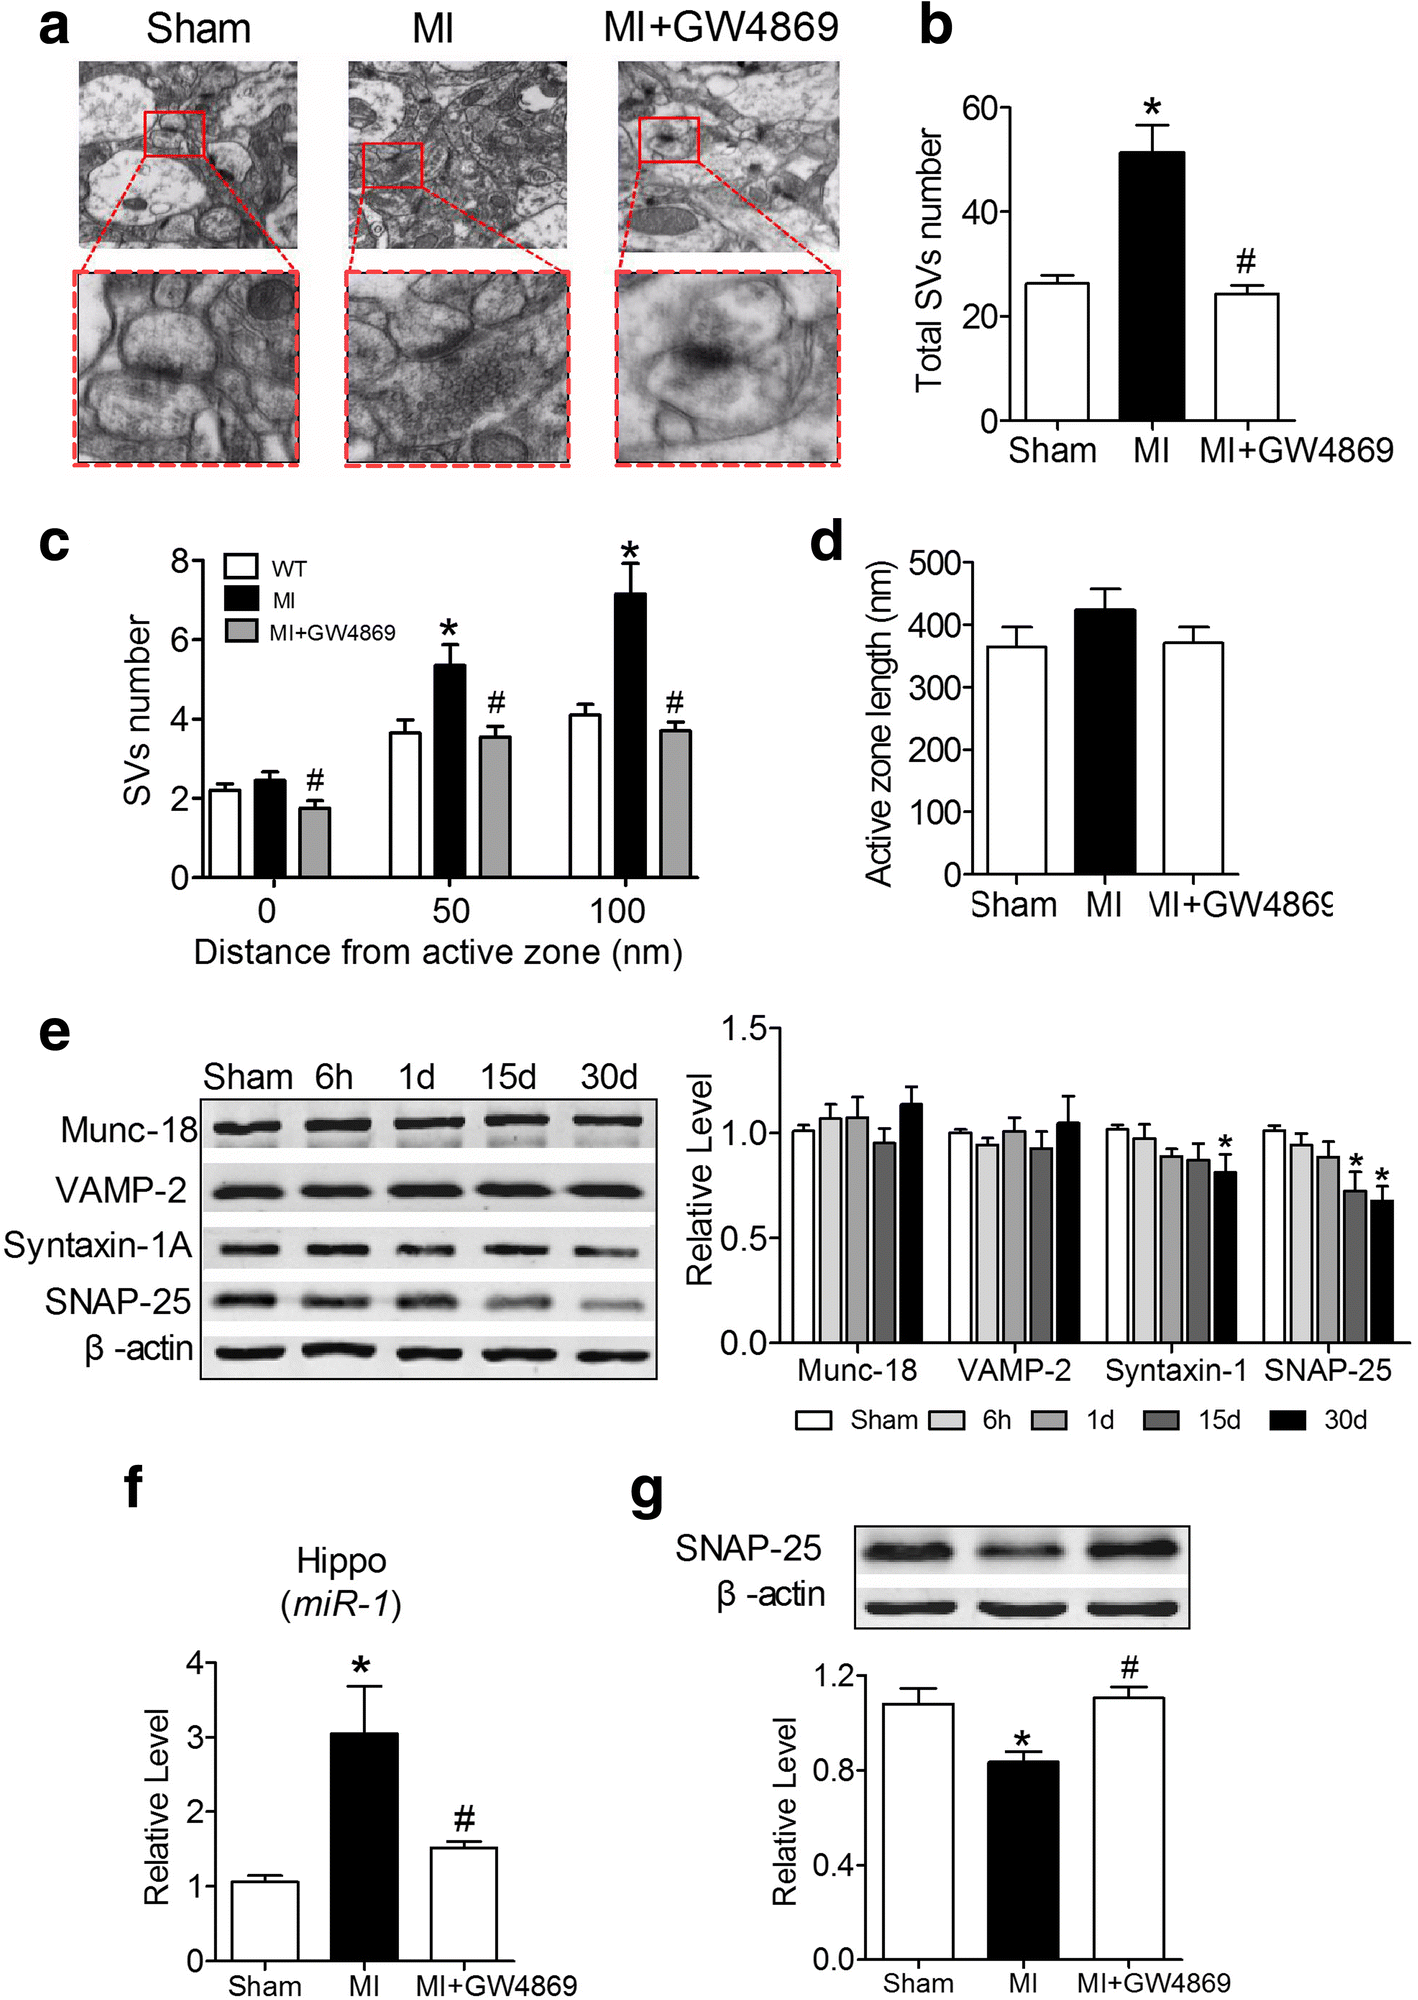 Overexpression Of Mir 1 In The Heart Attenuates Hippocampal Synaptic Cat 303 5c Wiring Diagram Fig 8